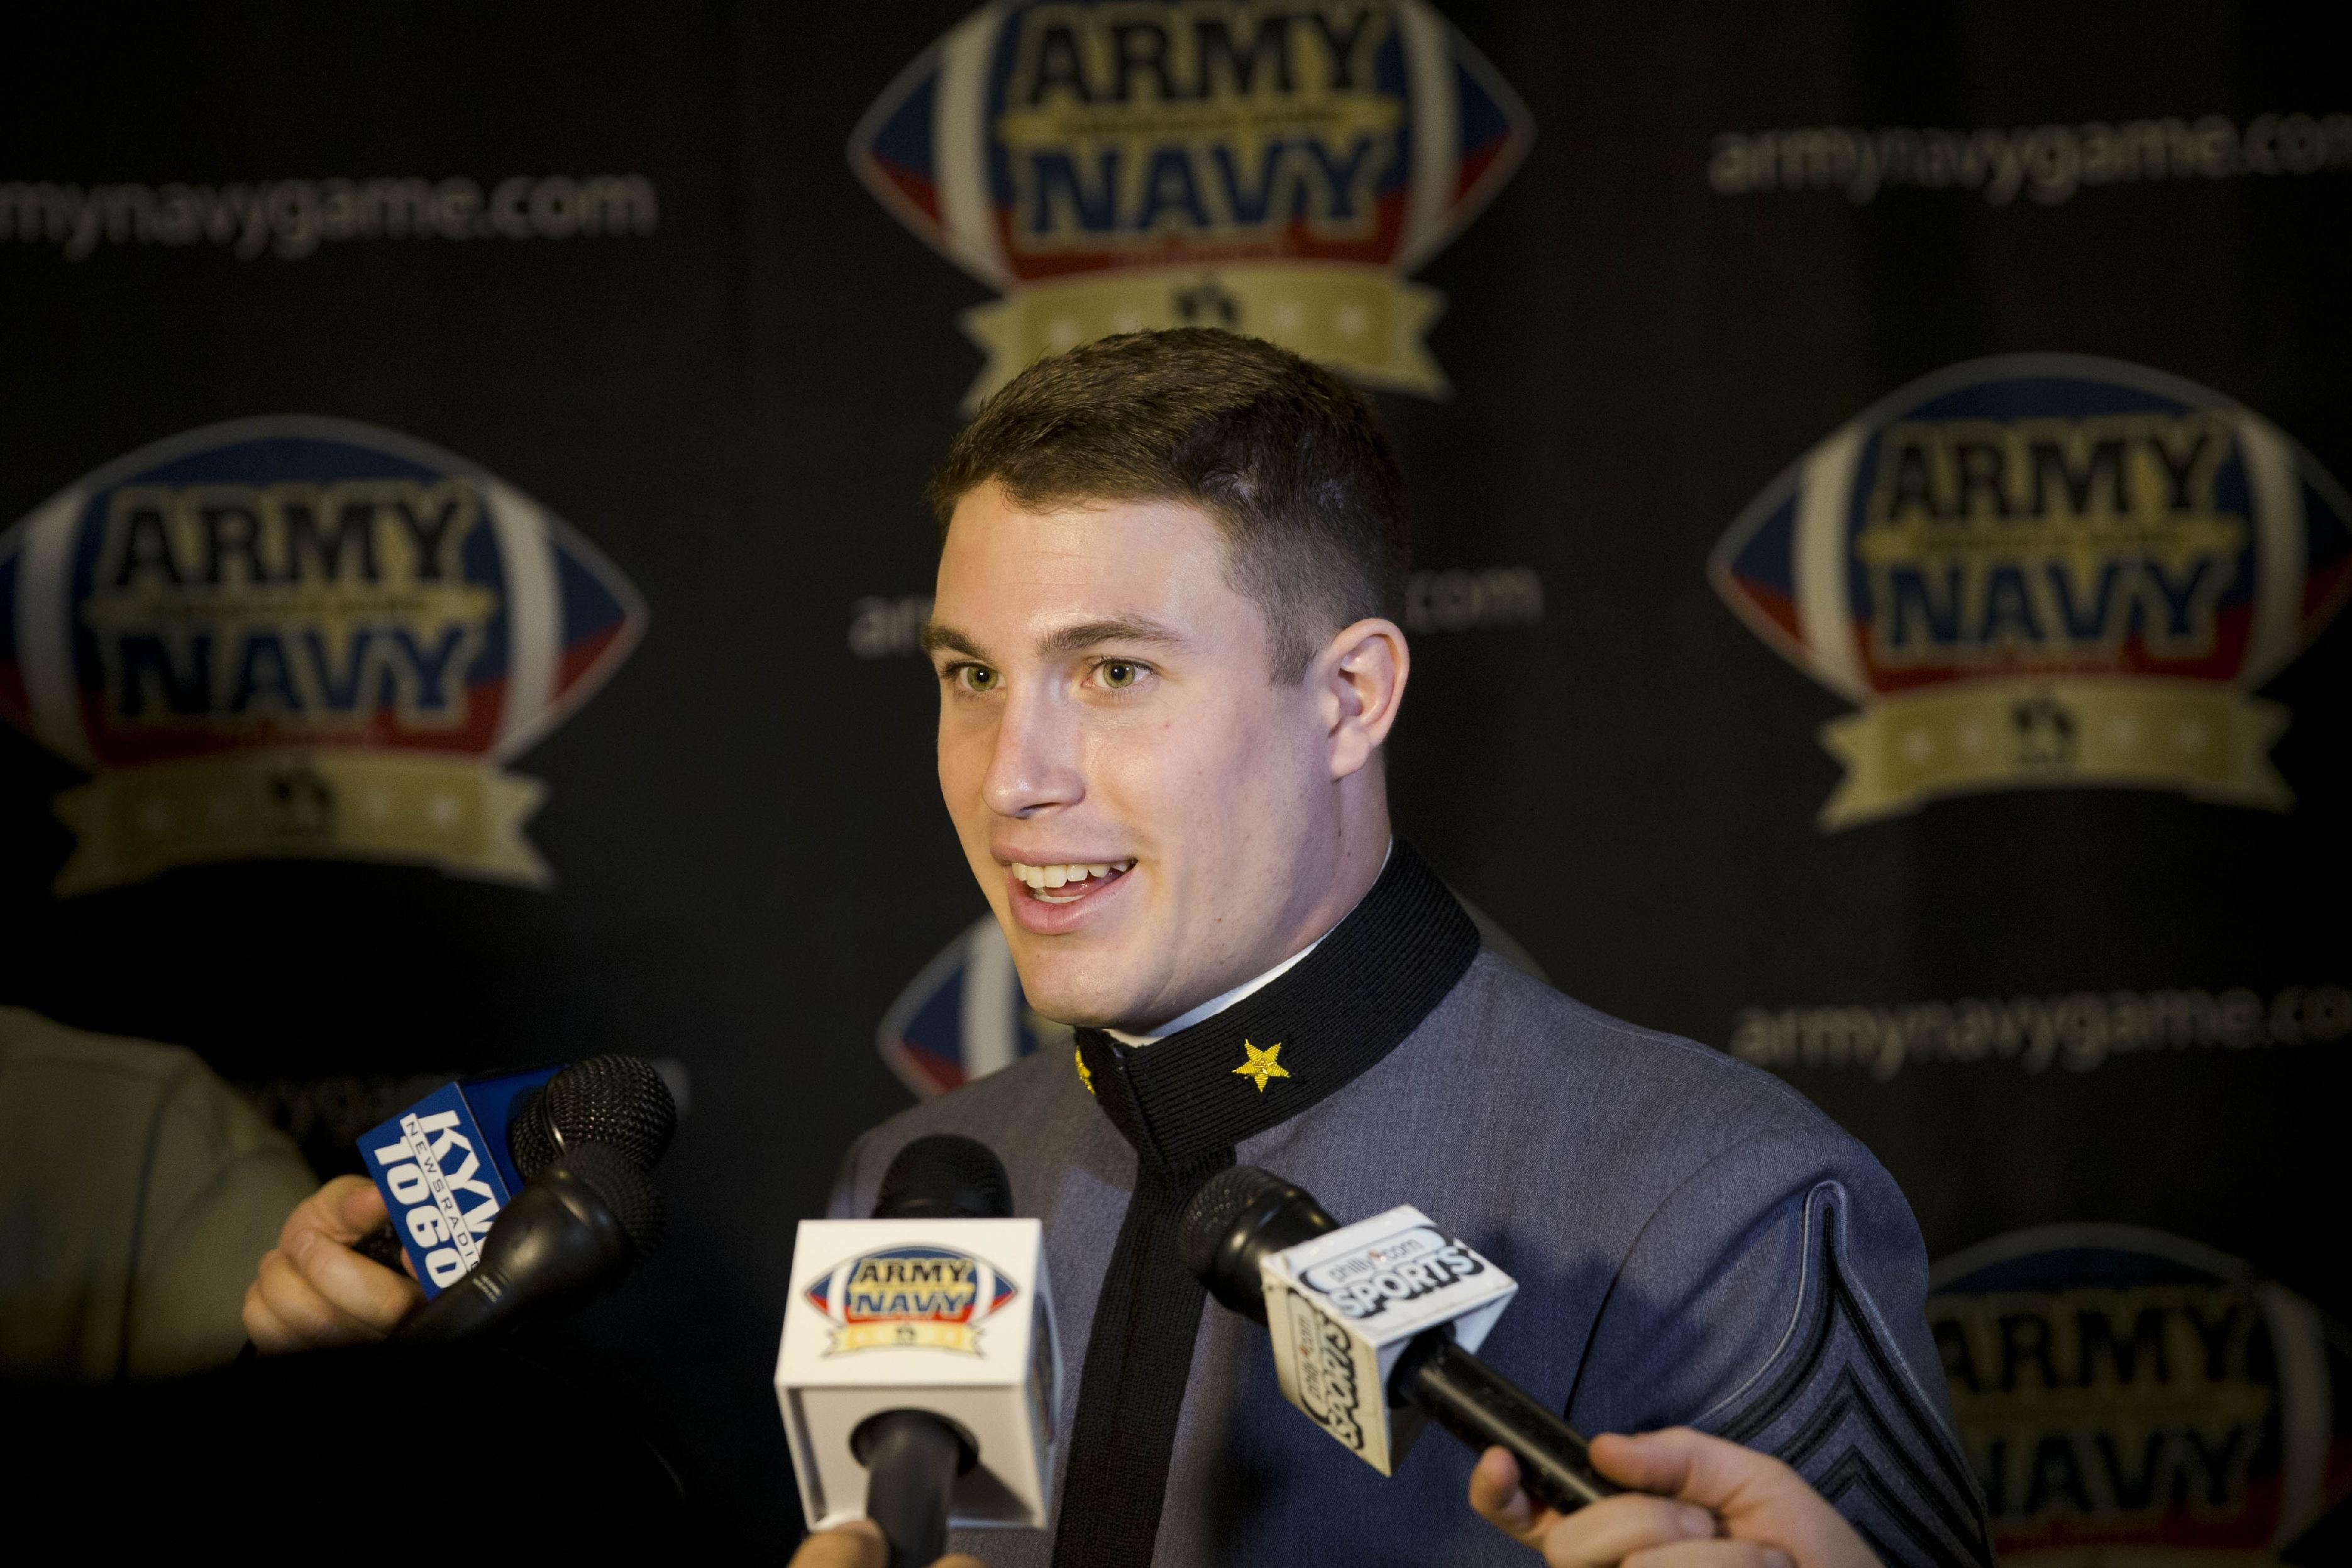 Army's Thomas Holloway speaks during a media availability, Wednesday, Dec. 4, 2013, in Philadelphia. Army and Navy NCAA college football teams are scheduled to play Saturday, Dec. 14 in Philadelphia